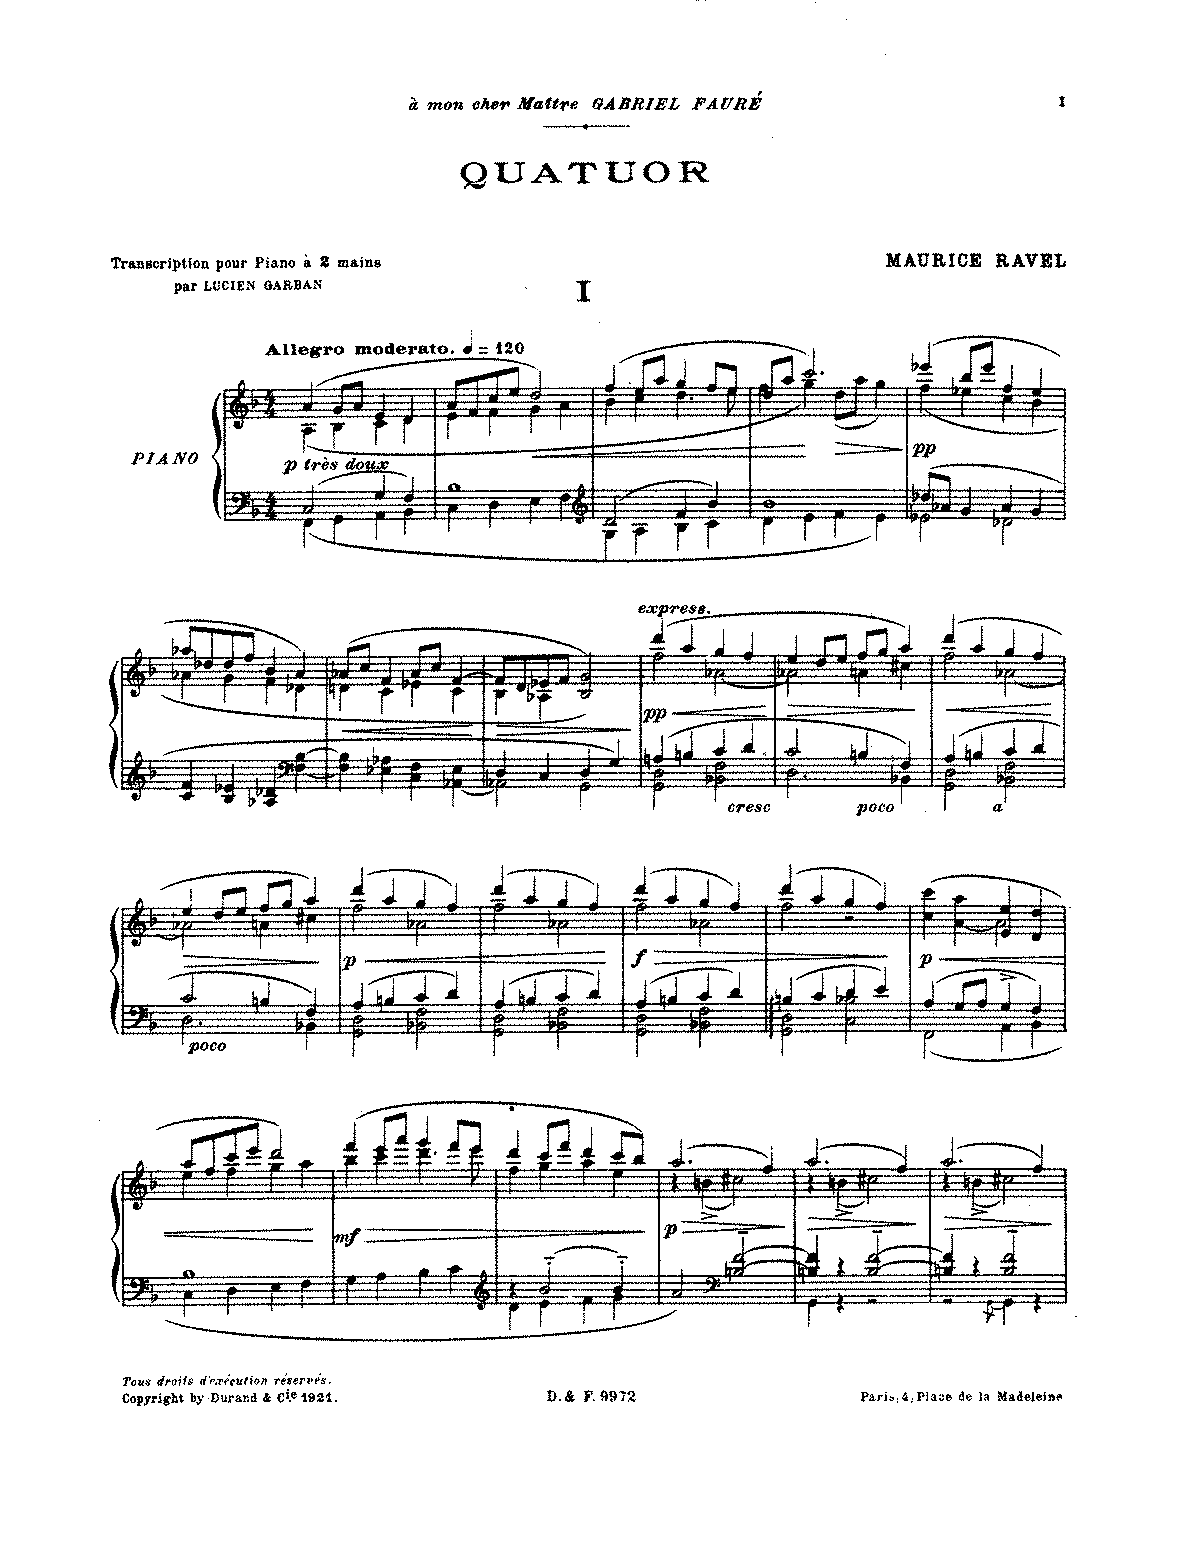 PMLP04844-Ravel - String Quartet (trans. Garban - Piano).pdf